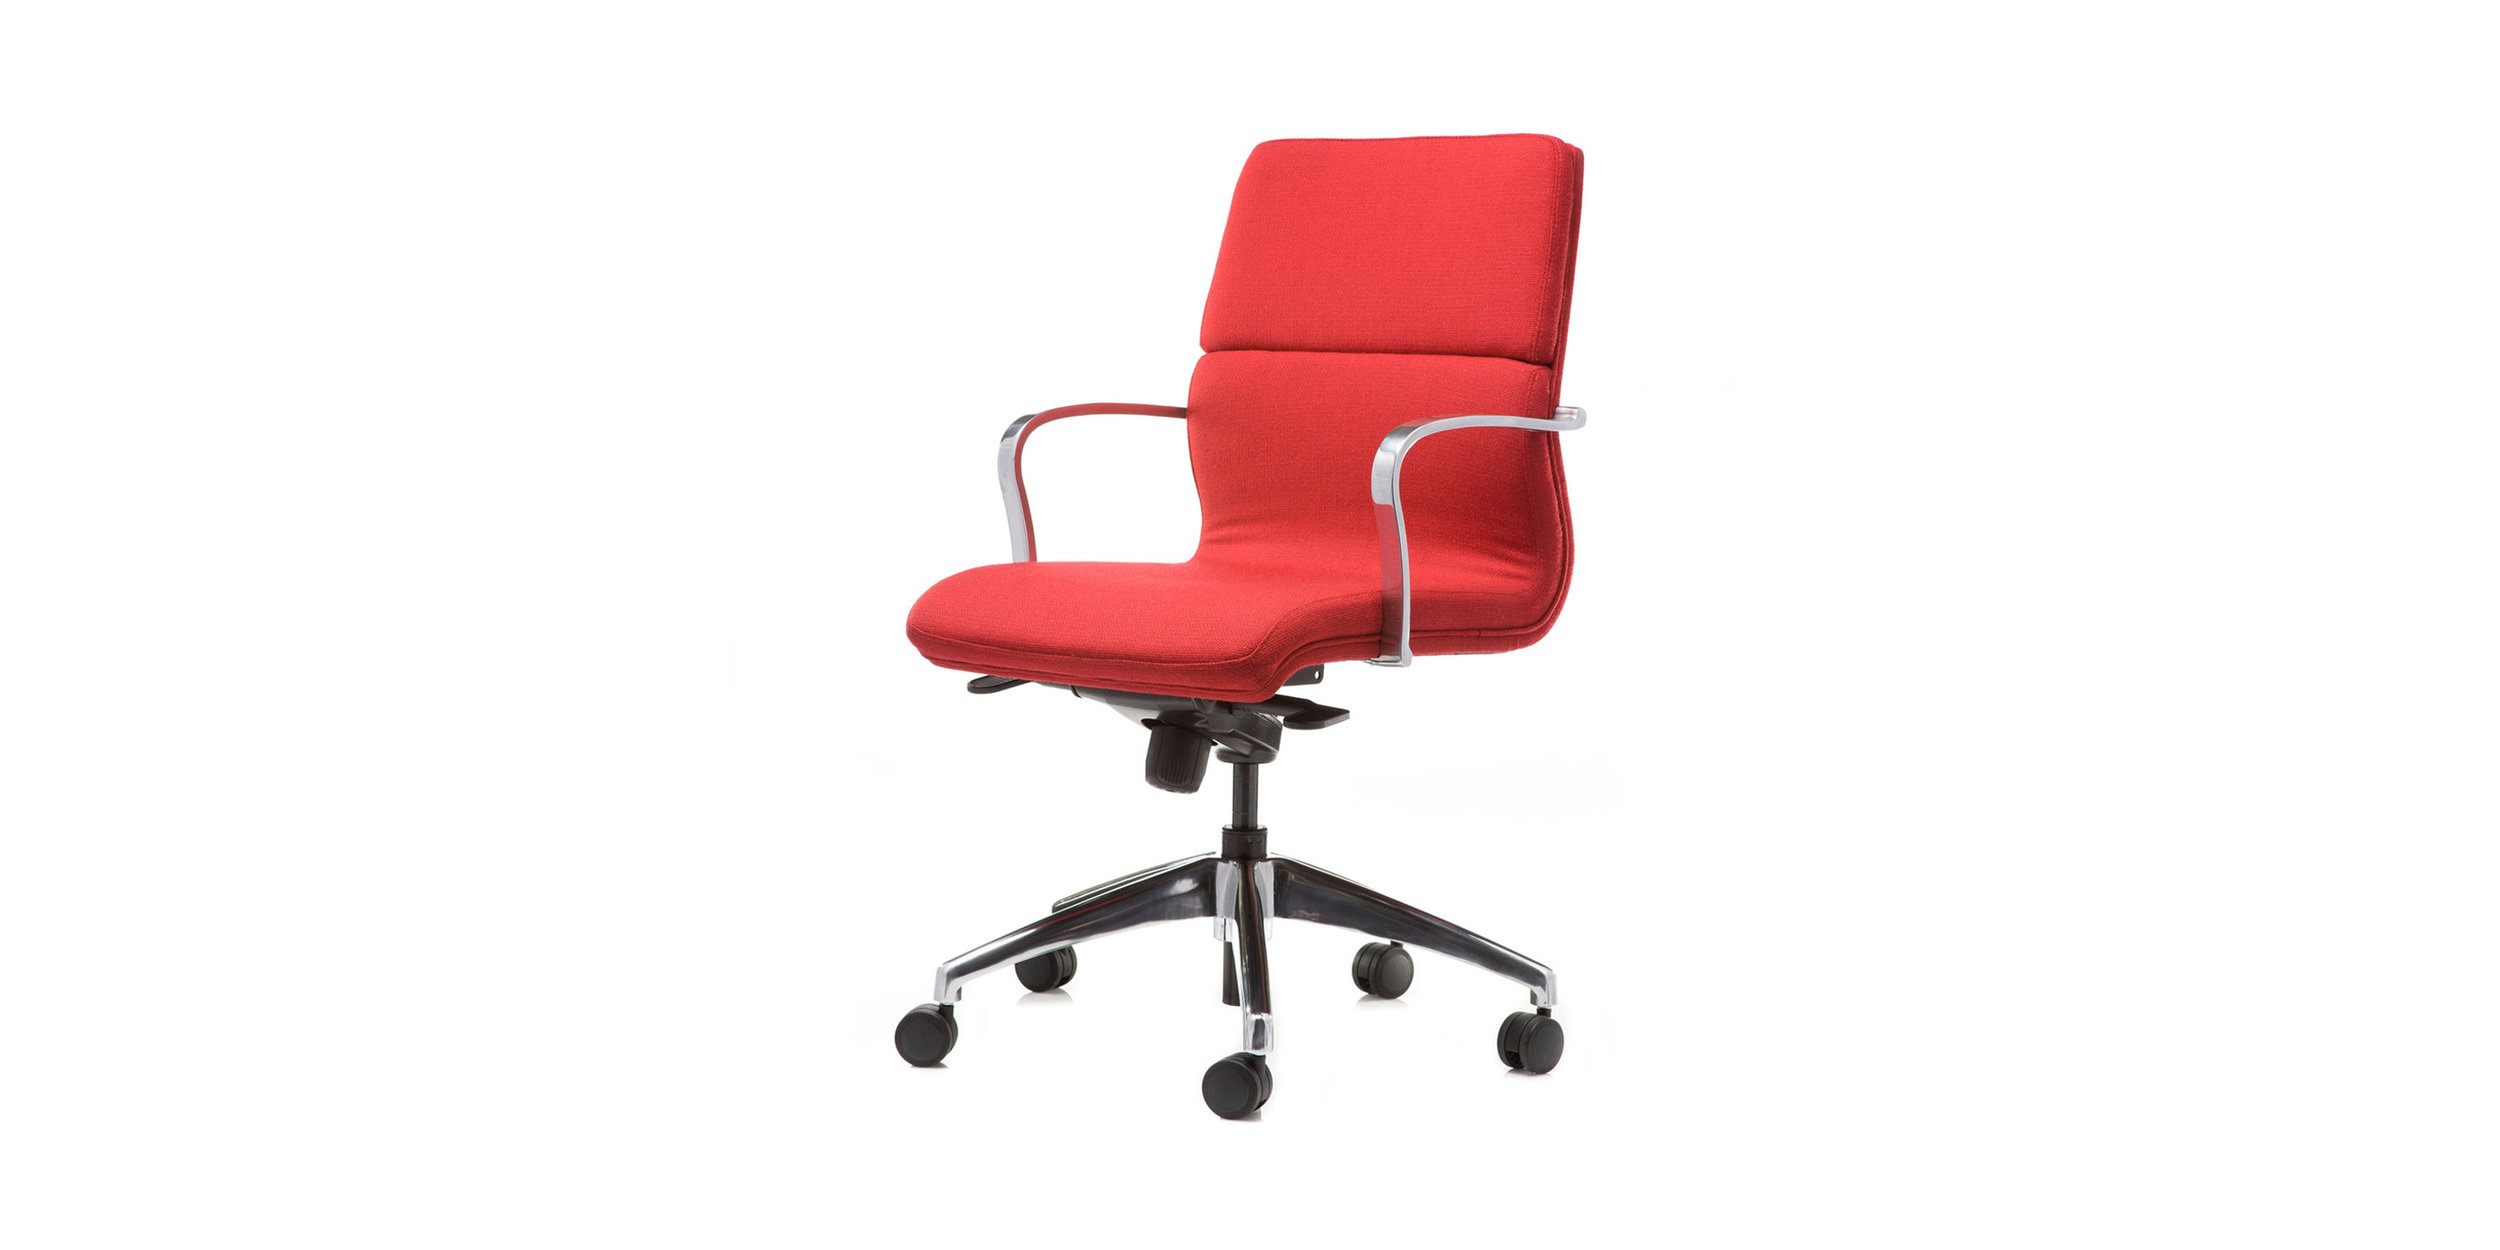 Meeting - We offer a wide range of chairs suitable for meeting rooms and boardrooms. Featuring a variety of styles and fabrics to complement the modern workplace, all chairs come with a five-year warranty and are priced to accommodate various budgets.